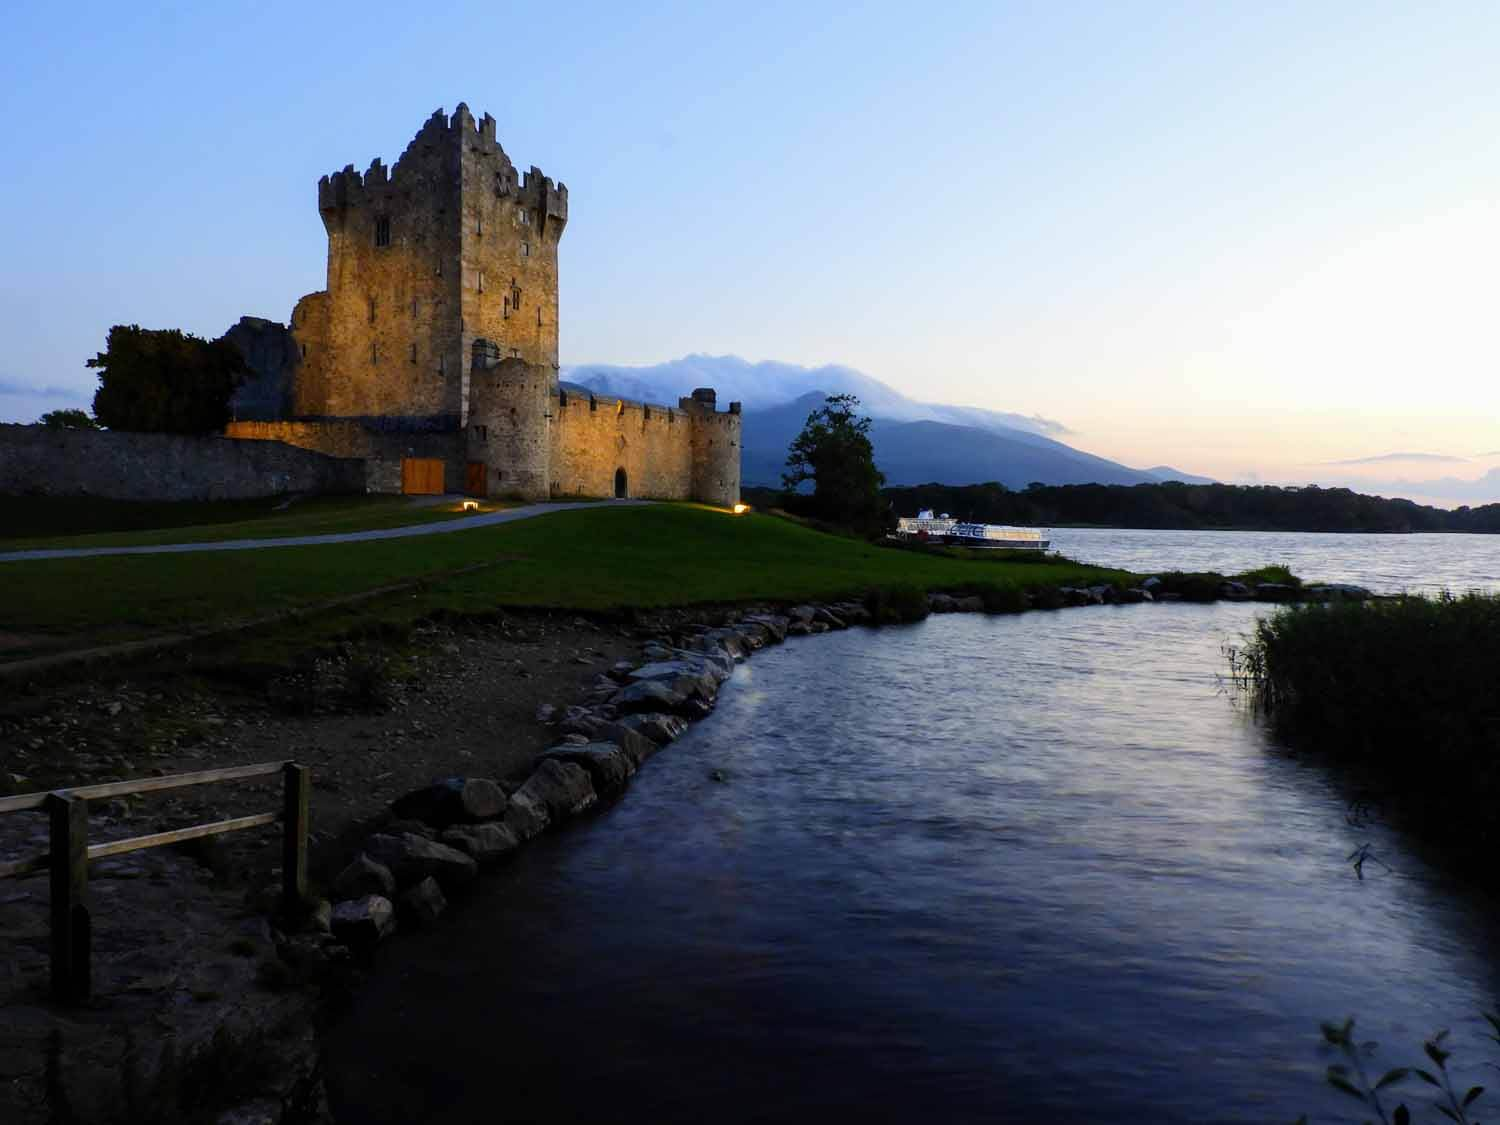 Ross Castle  - I won't ever forget watching the sunset over the horizon as we wandered around the 15th century Ross Castle along the banks of Killarney's lower lake. Memories like this are why Killarney National Park will forever hold a special place in our hearts. I'd bet most people visit this castle during the day (as tours are available then), but if given the chance, we recommend a sunset picnic! Ours consisted of bread and cheese - typical for us.